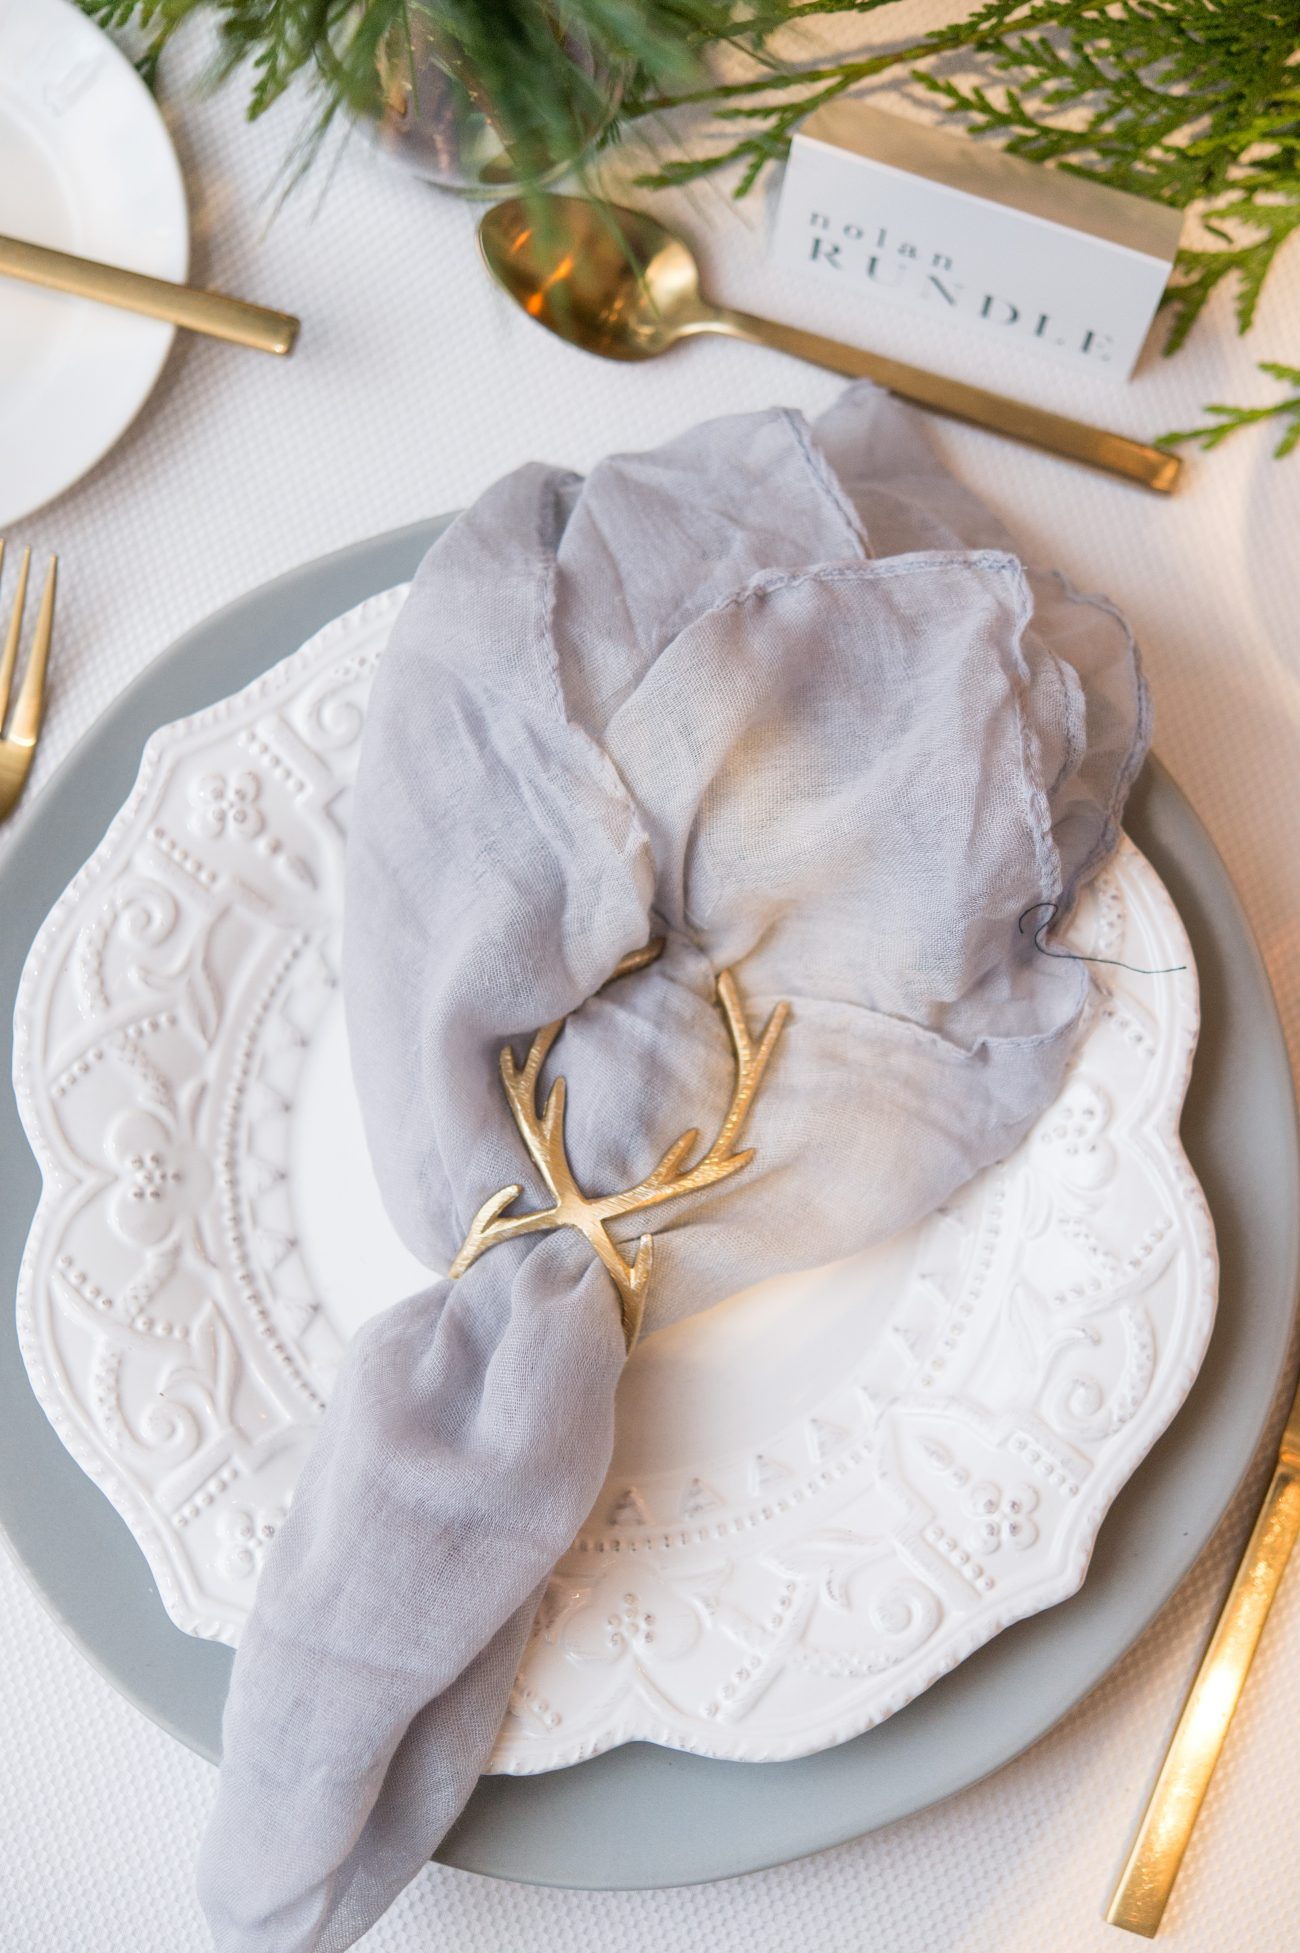 antler napkin ring for holiday table setting